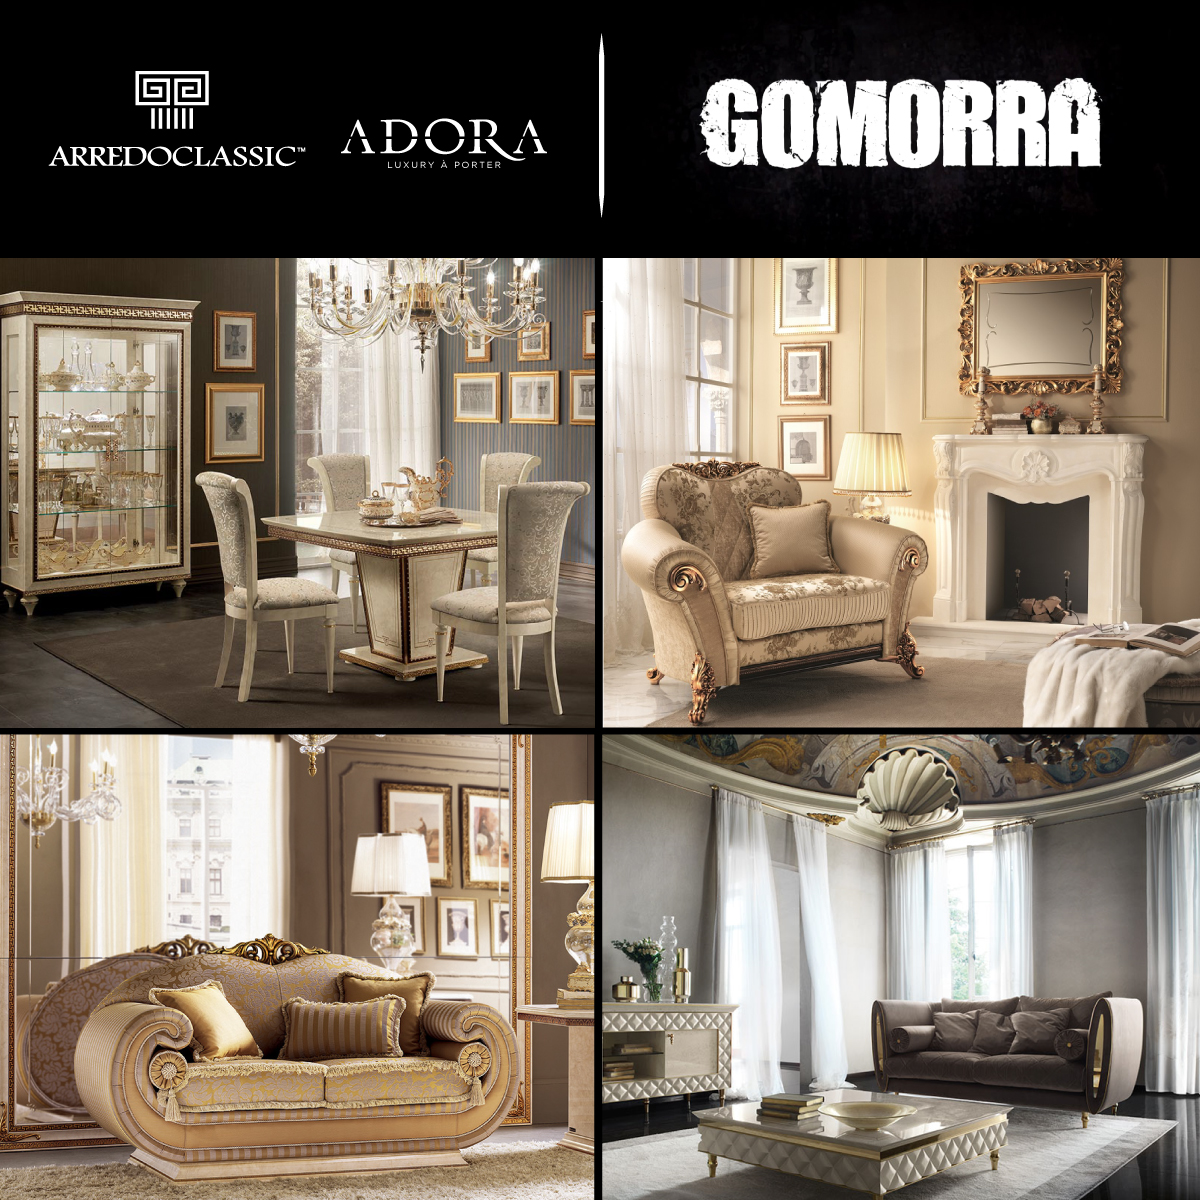 Arredoclassic and Adora, the stars of Gomorra 4